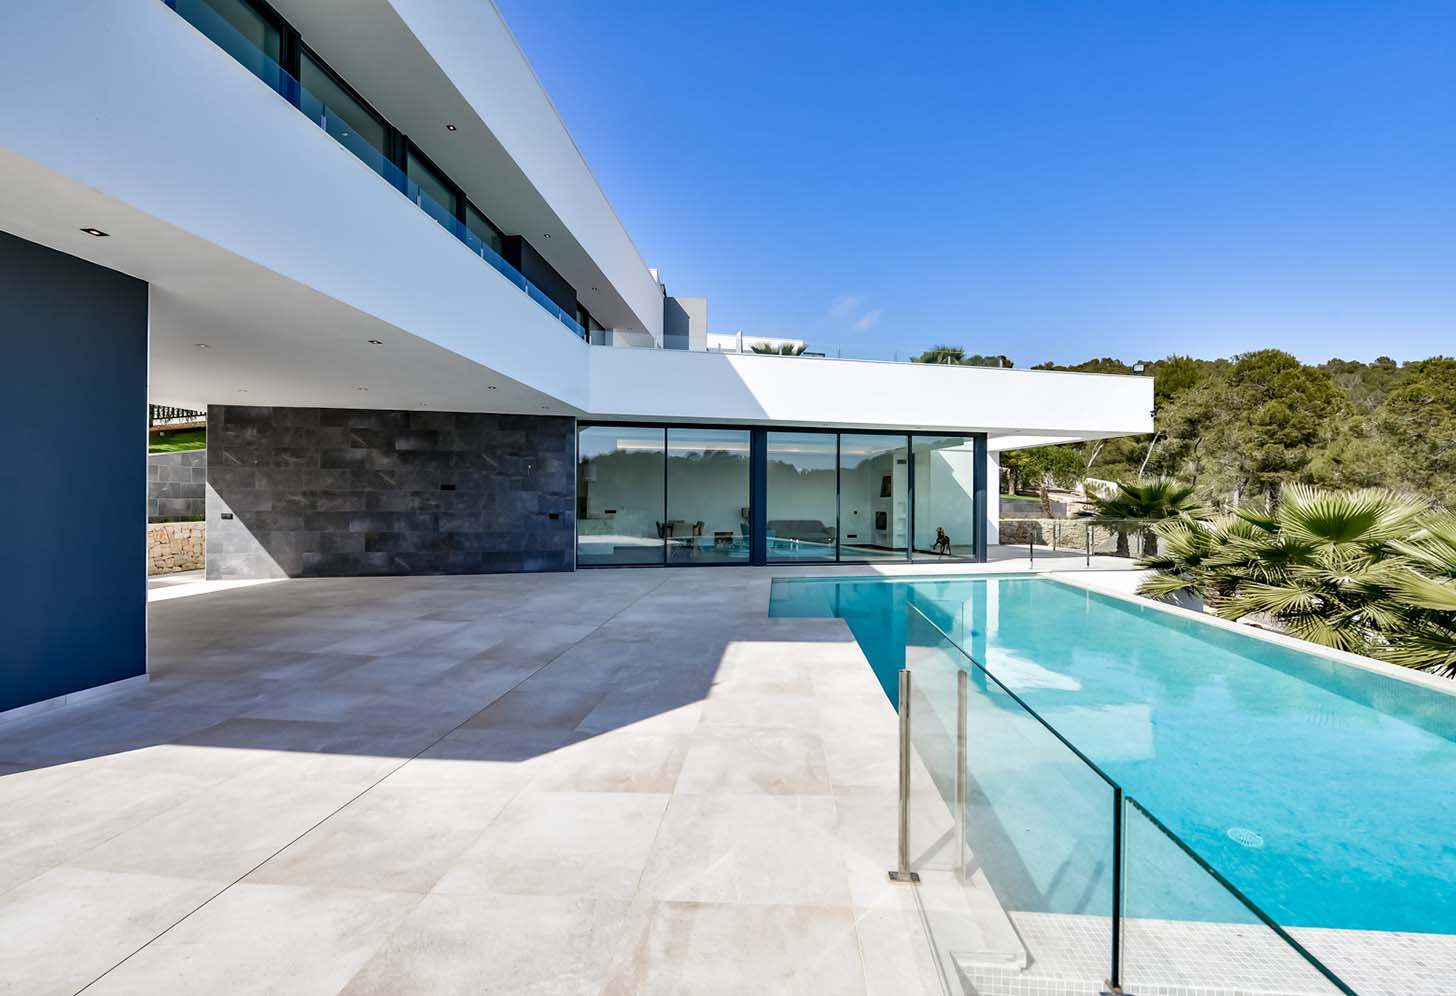 immobilier neuf espagne costa blanca nord on-i1 piscine